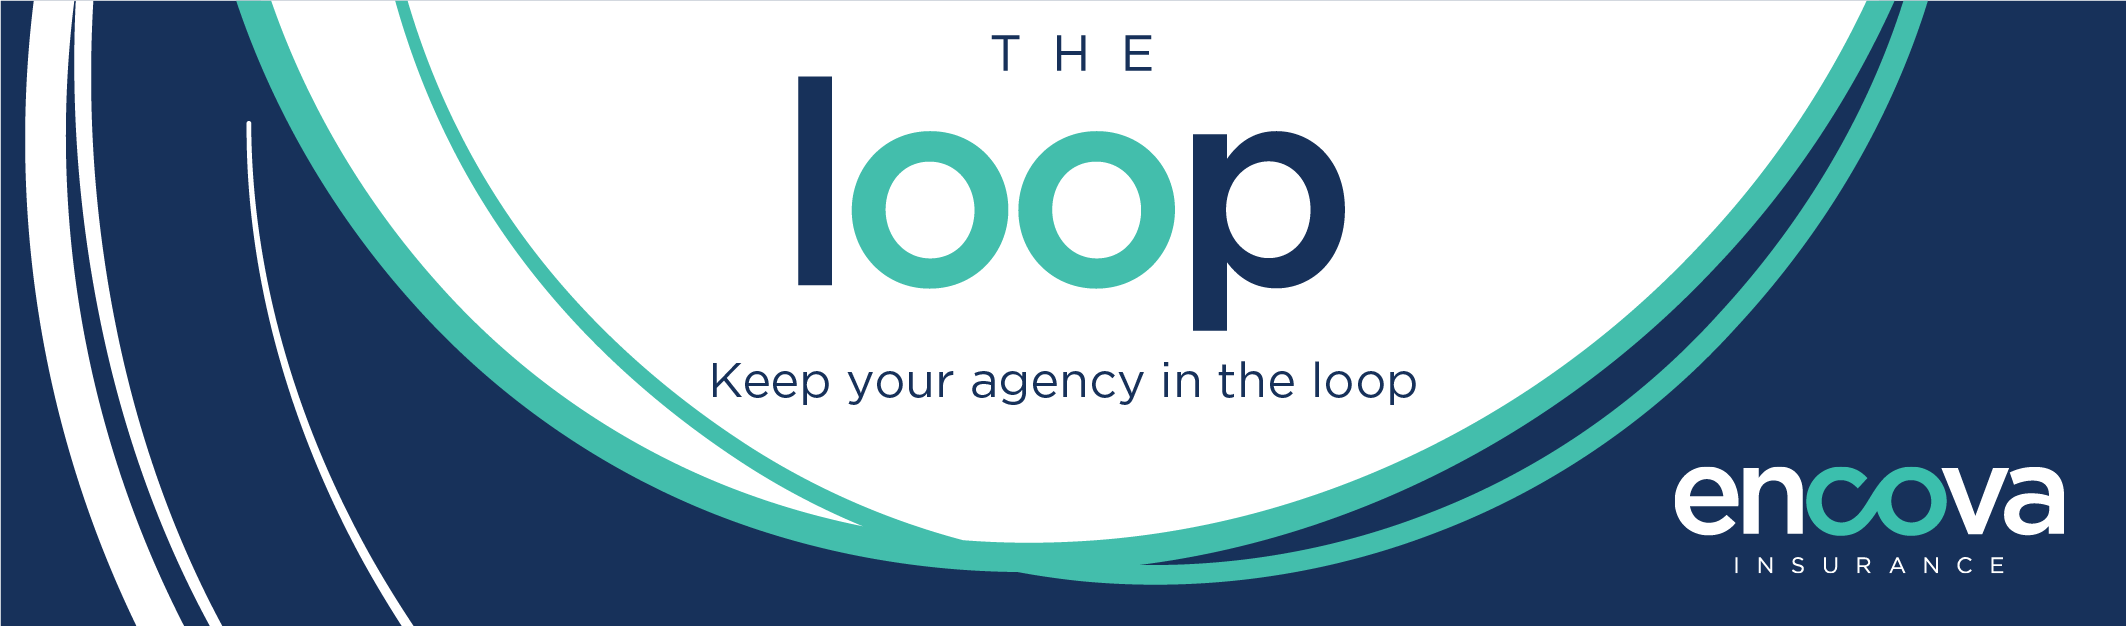 The Loop Header